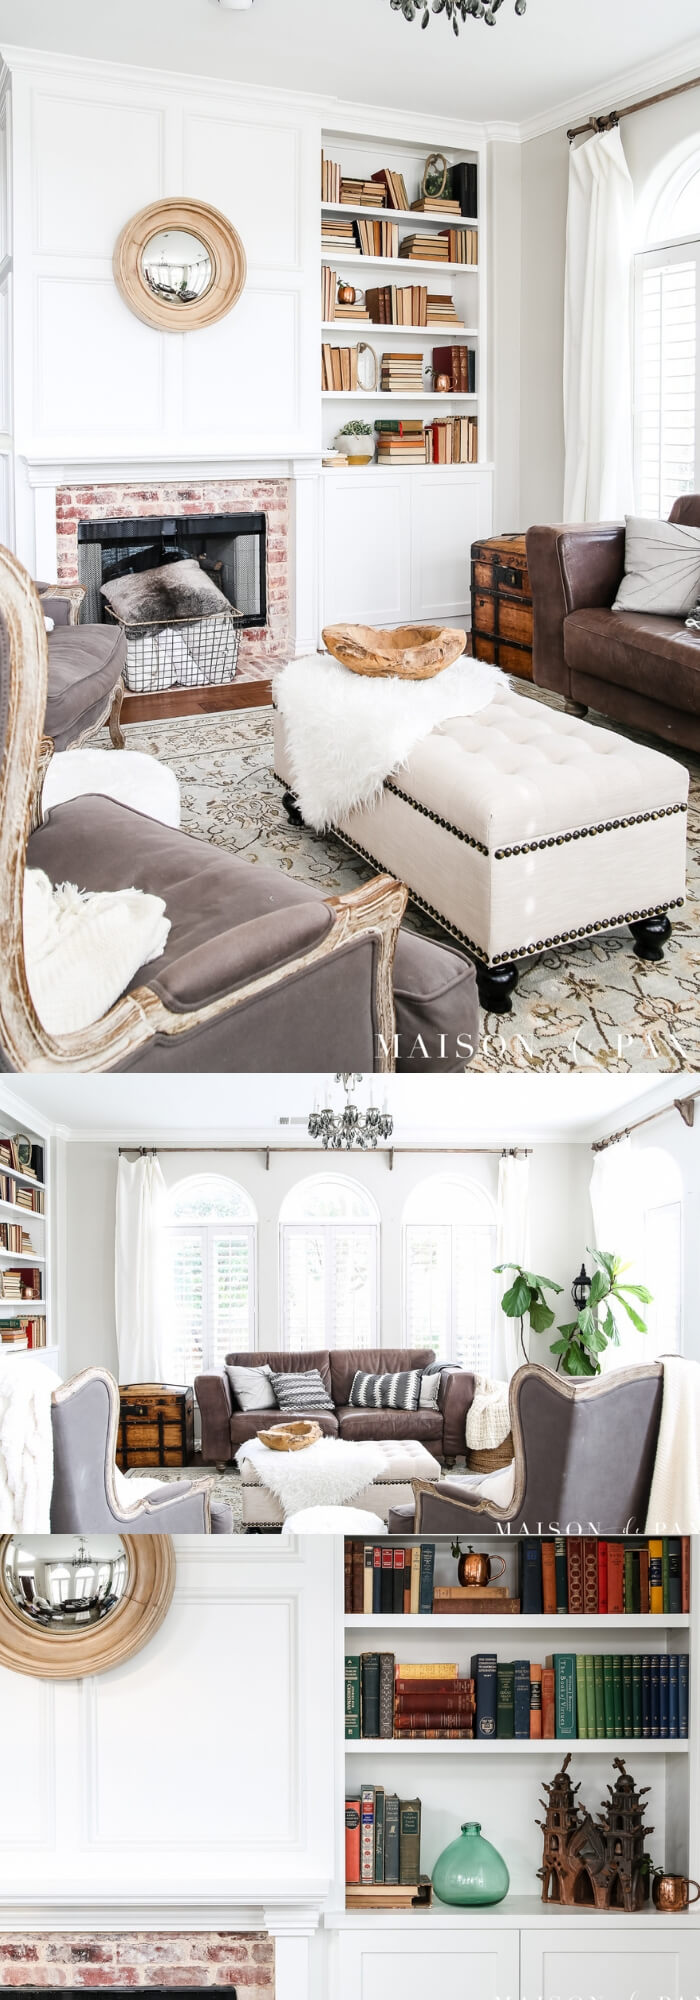 Transitioning from winter whites to neutrals, blues, and greens | Spring Spruce-Up - Quick, Cheap Home Décor Ideas | FarmFoodFamily.com